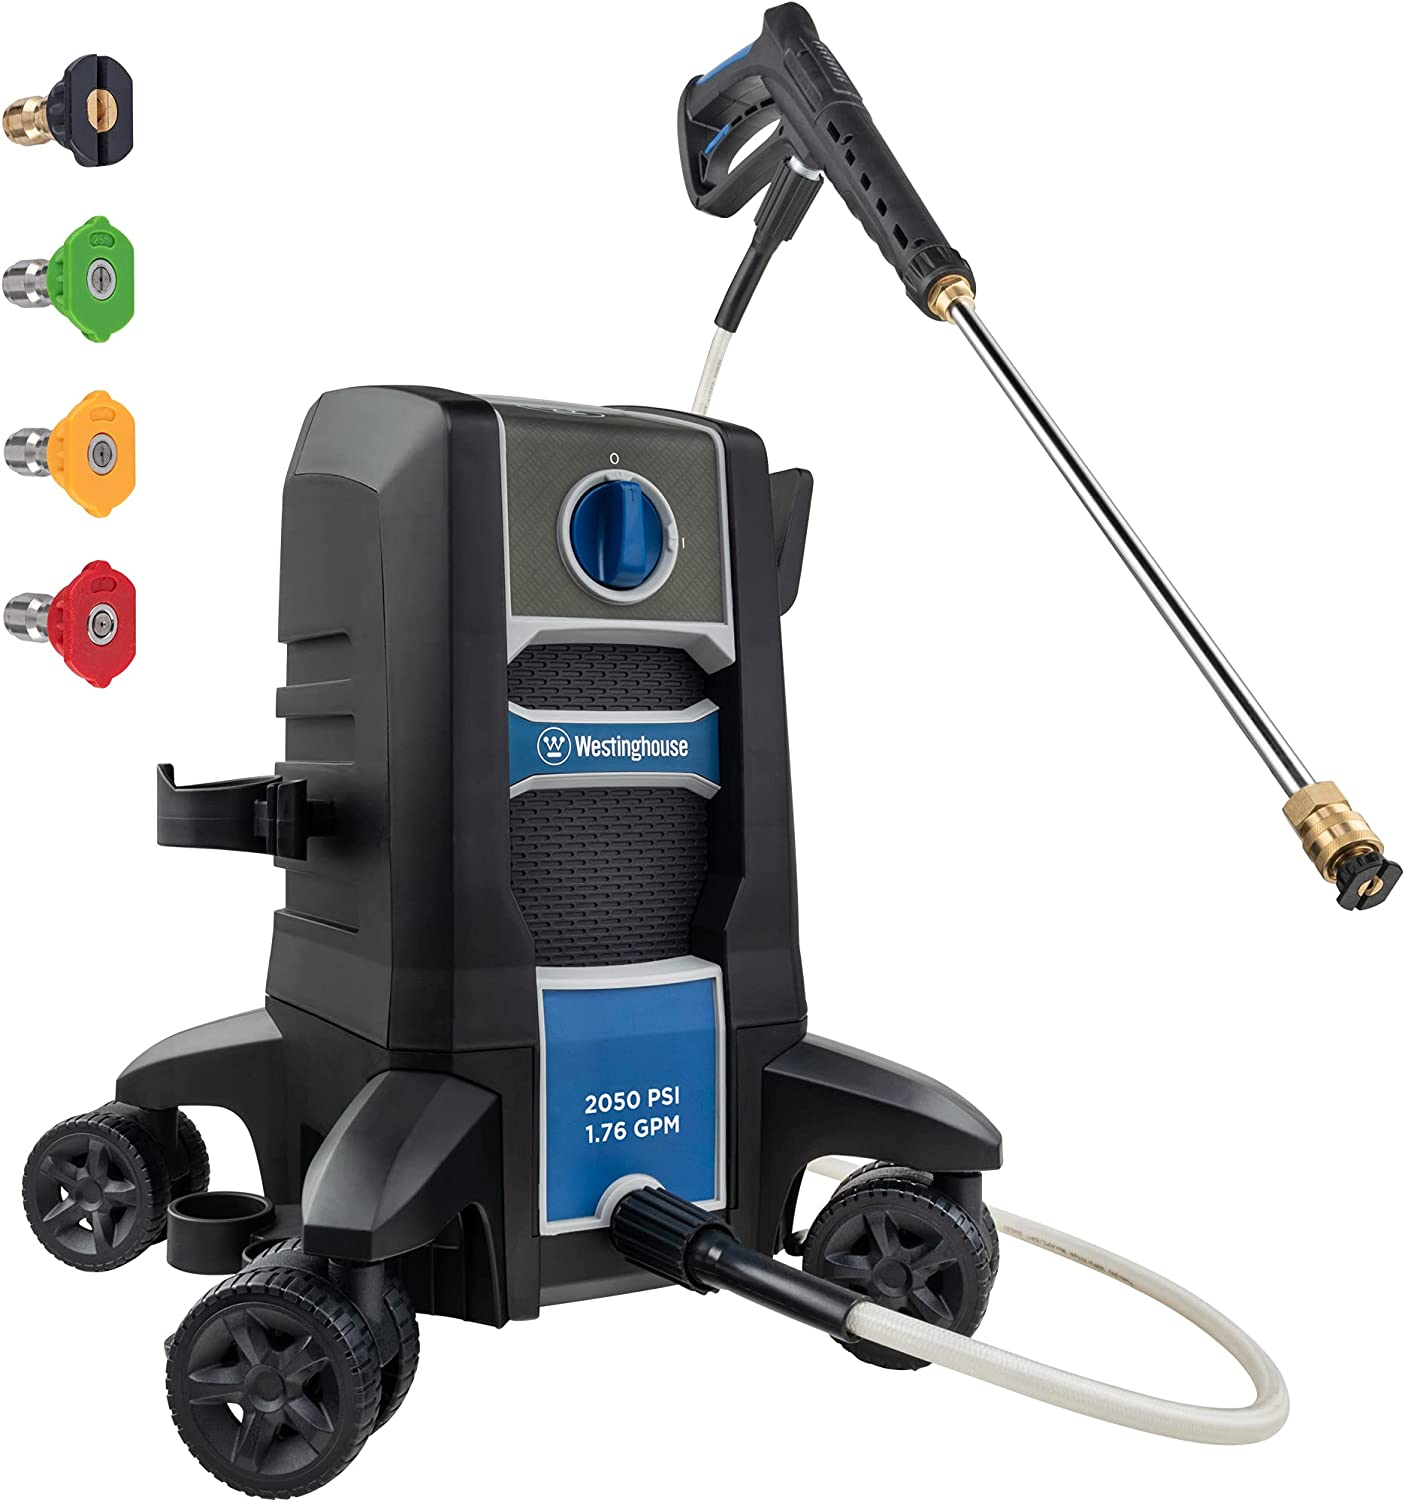 Westinghouse Electric Pressure Washer 2050 PSI